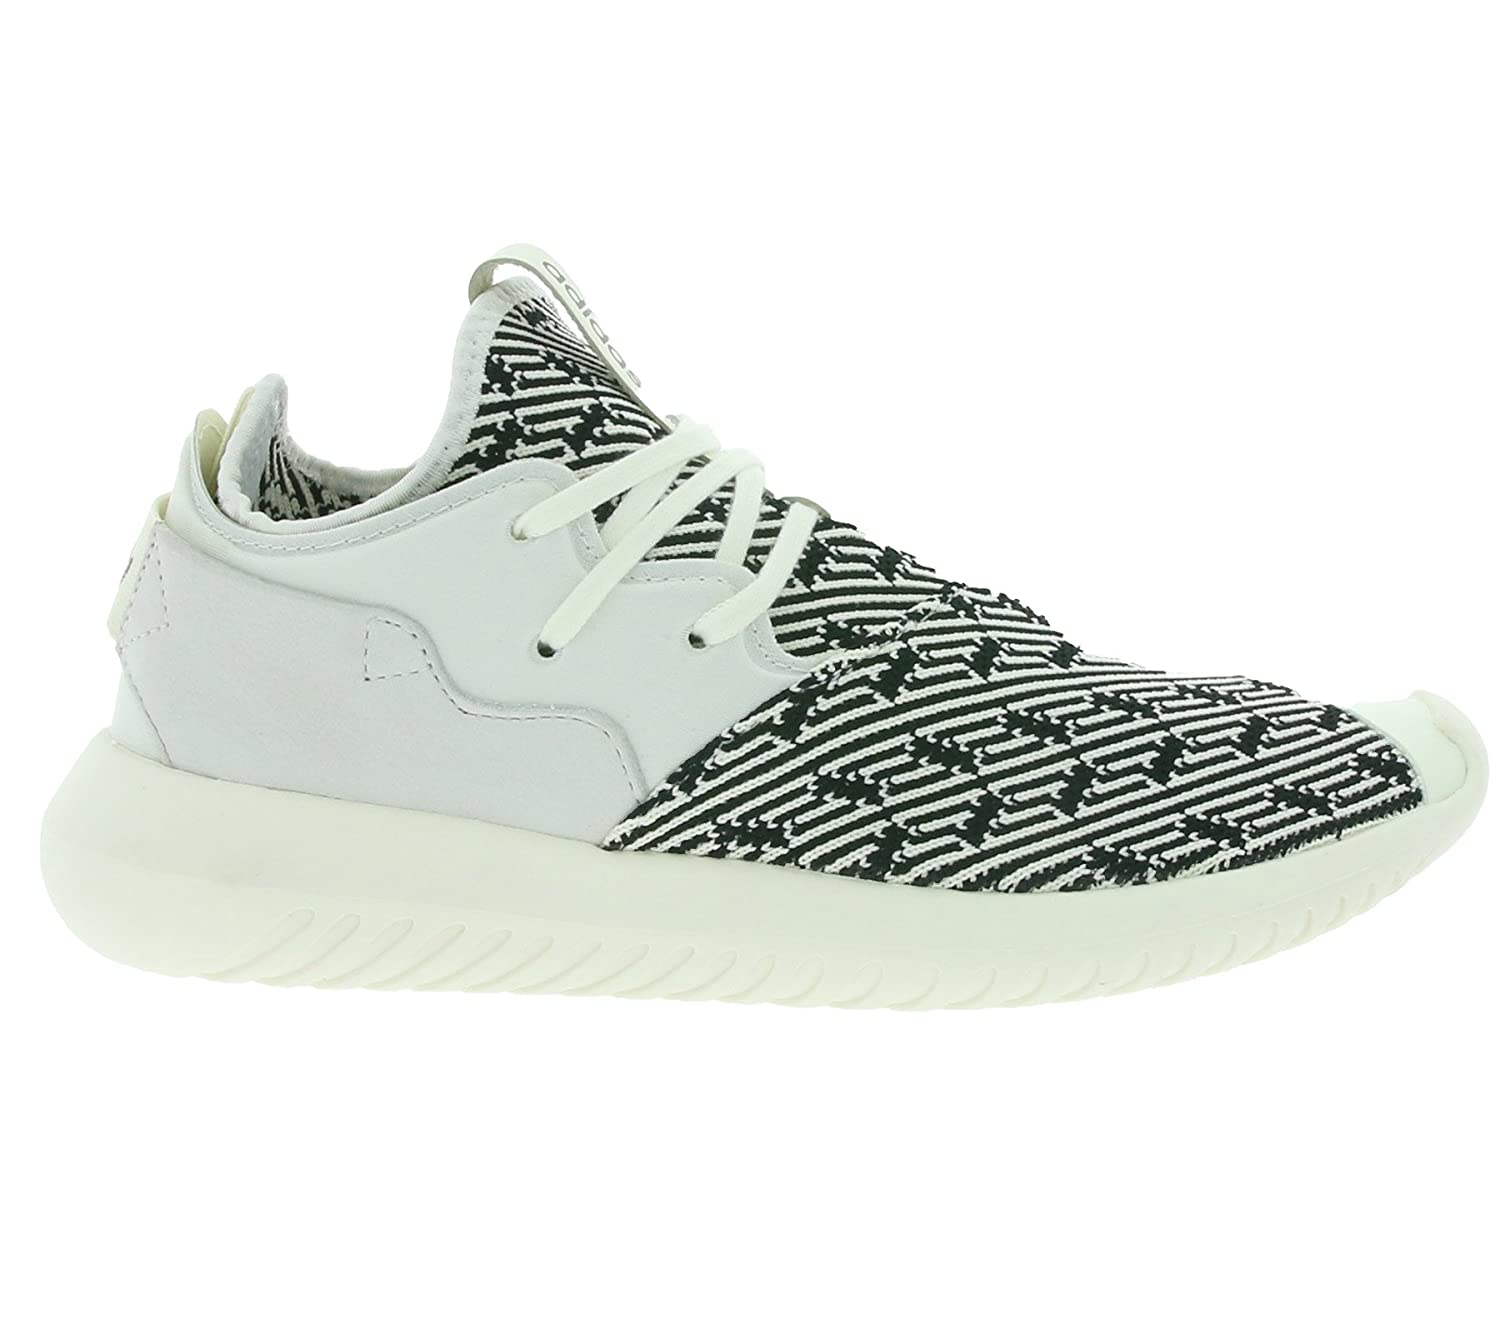 buy popular 66807 63227 adidas Originals Tubular Entrap Primeknit W Donne Scarpe da Tennis Bianche  S76547, Damen - Schuhe - Turnschuhe   Sneaker 95672 38  Amazon.it  Scarpe e  borse